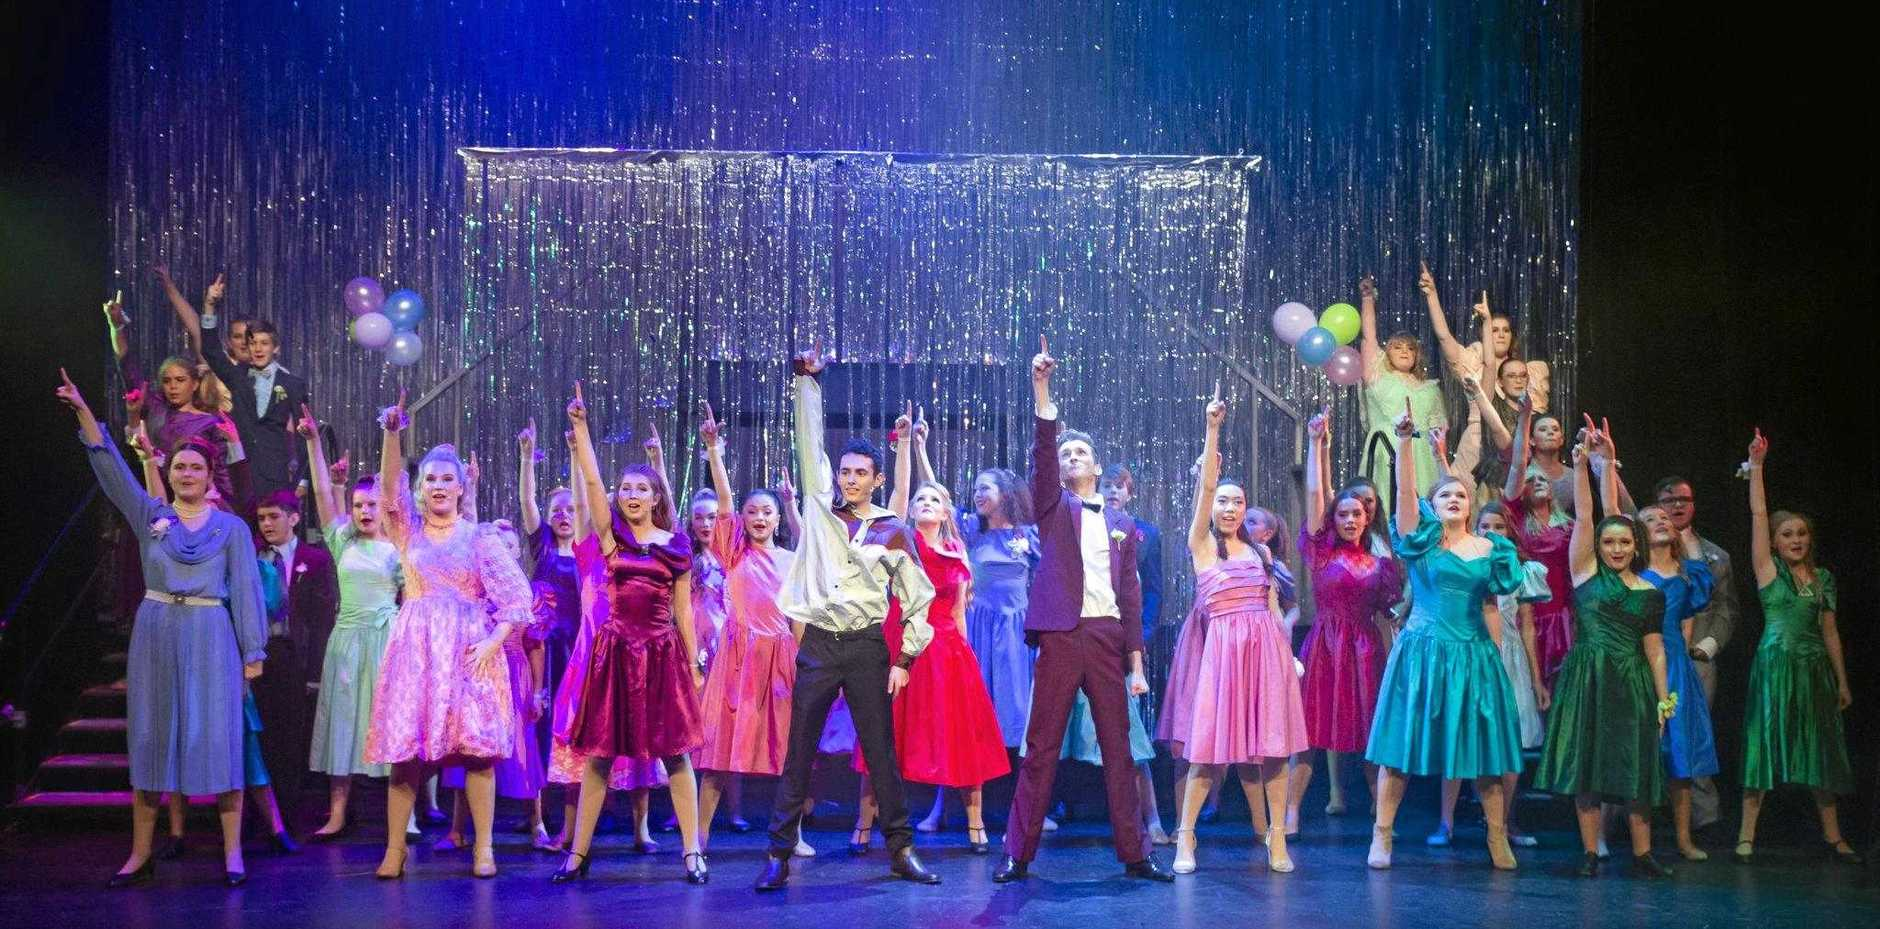 CUTTING LOOSE: The cast of Holy Spirit College's production of Footloose.